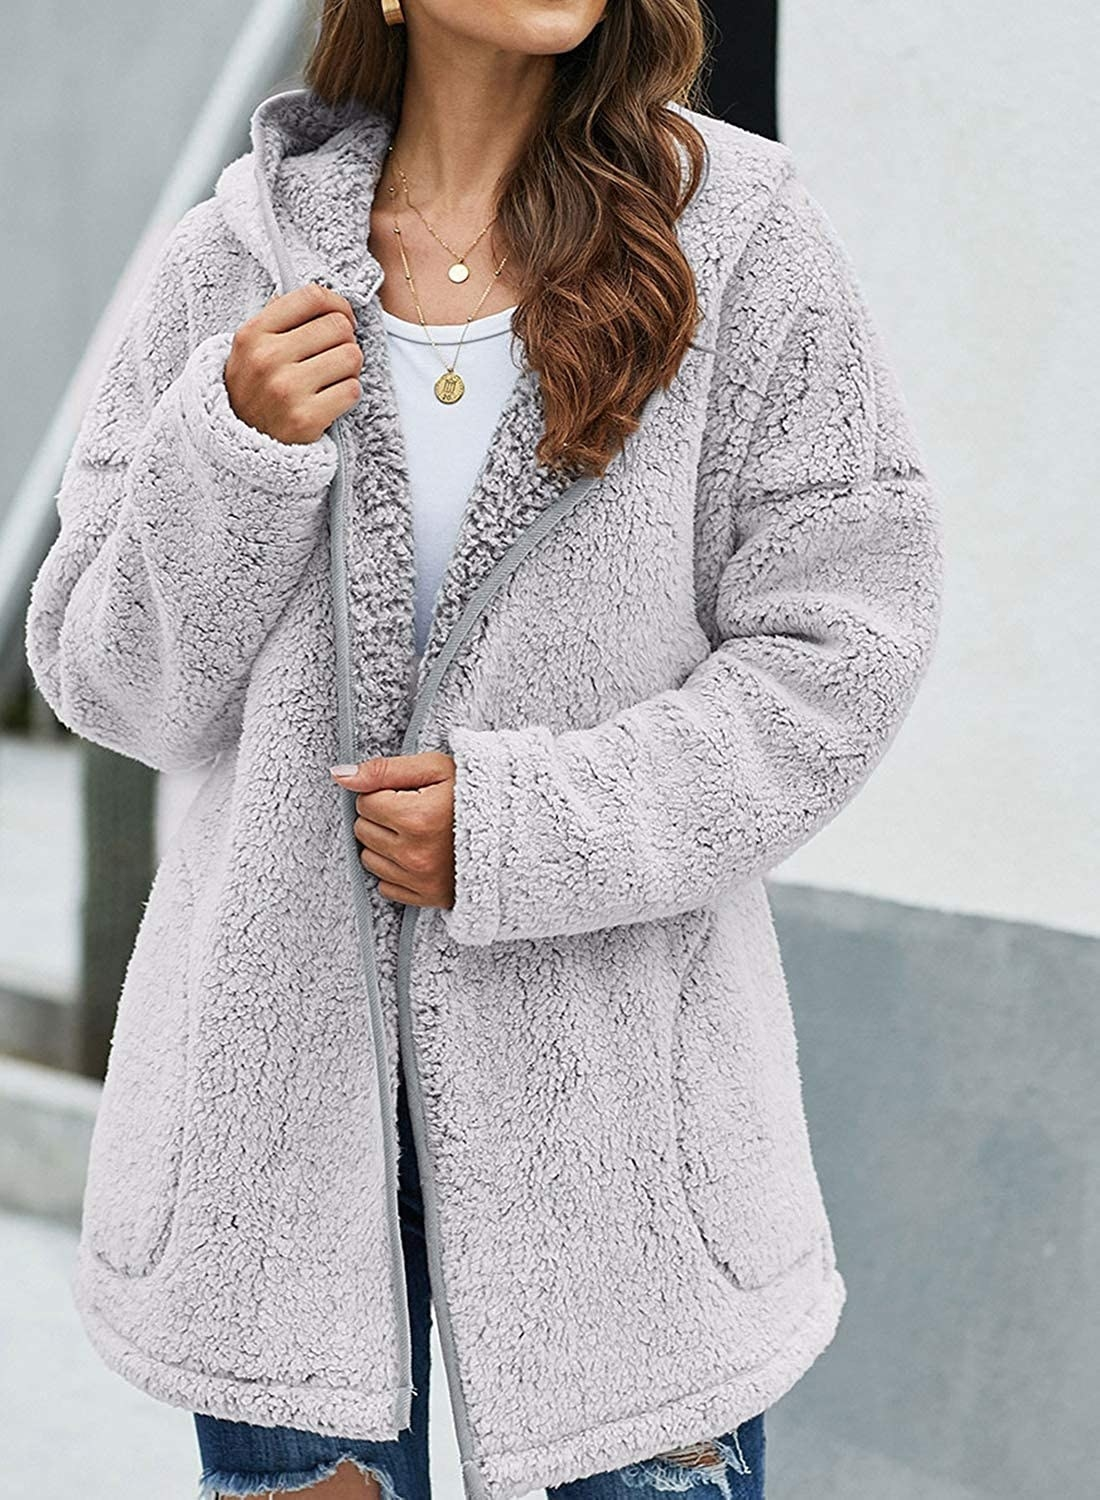 A close up of a model in the Dokotoo Fuzzy Fleece Open Front Hooded Cardigan in gray